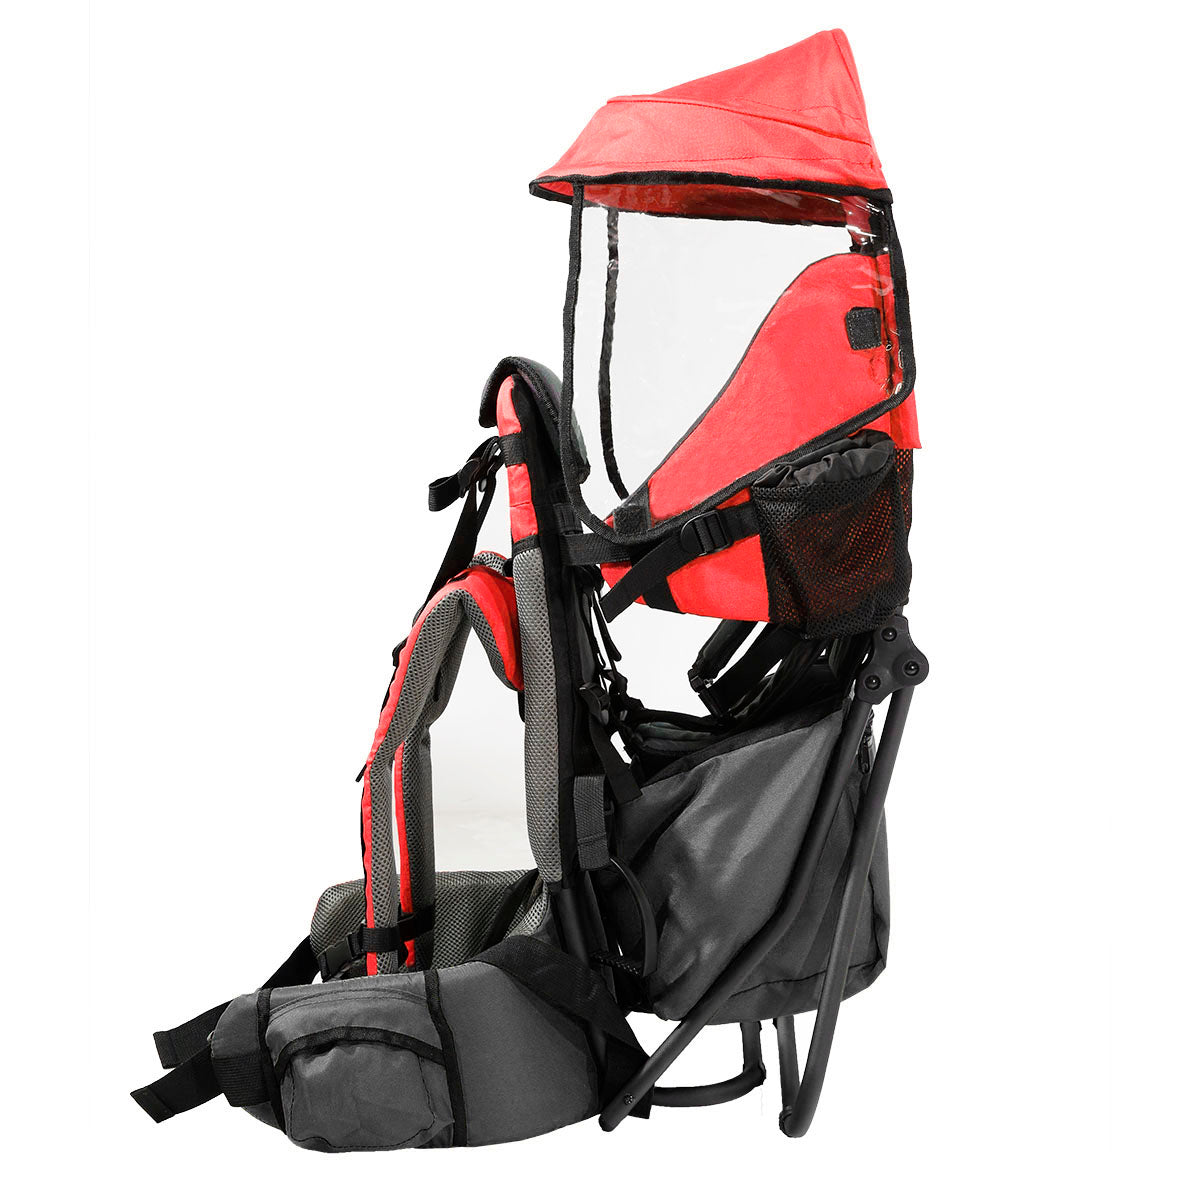 7f8592b061d Baby Backpack Cross Country Hiking Child Carrier